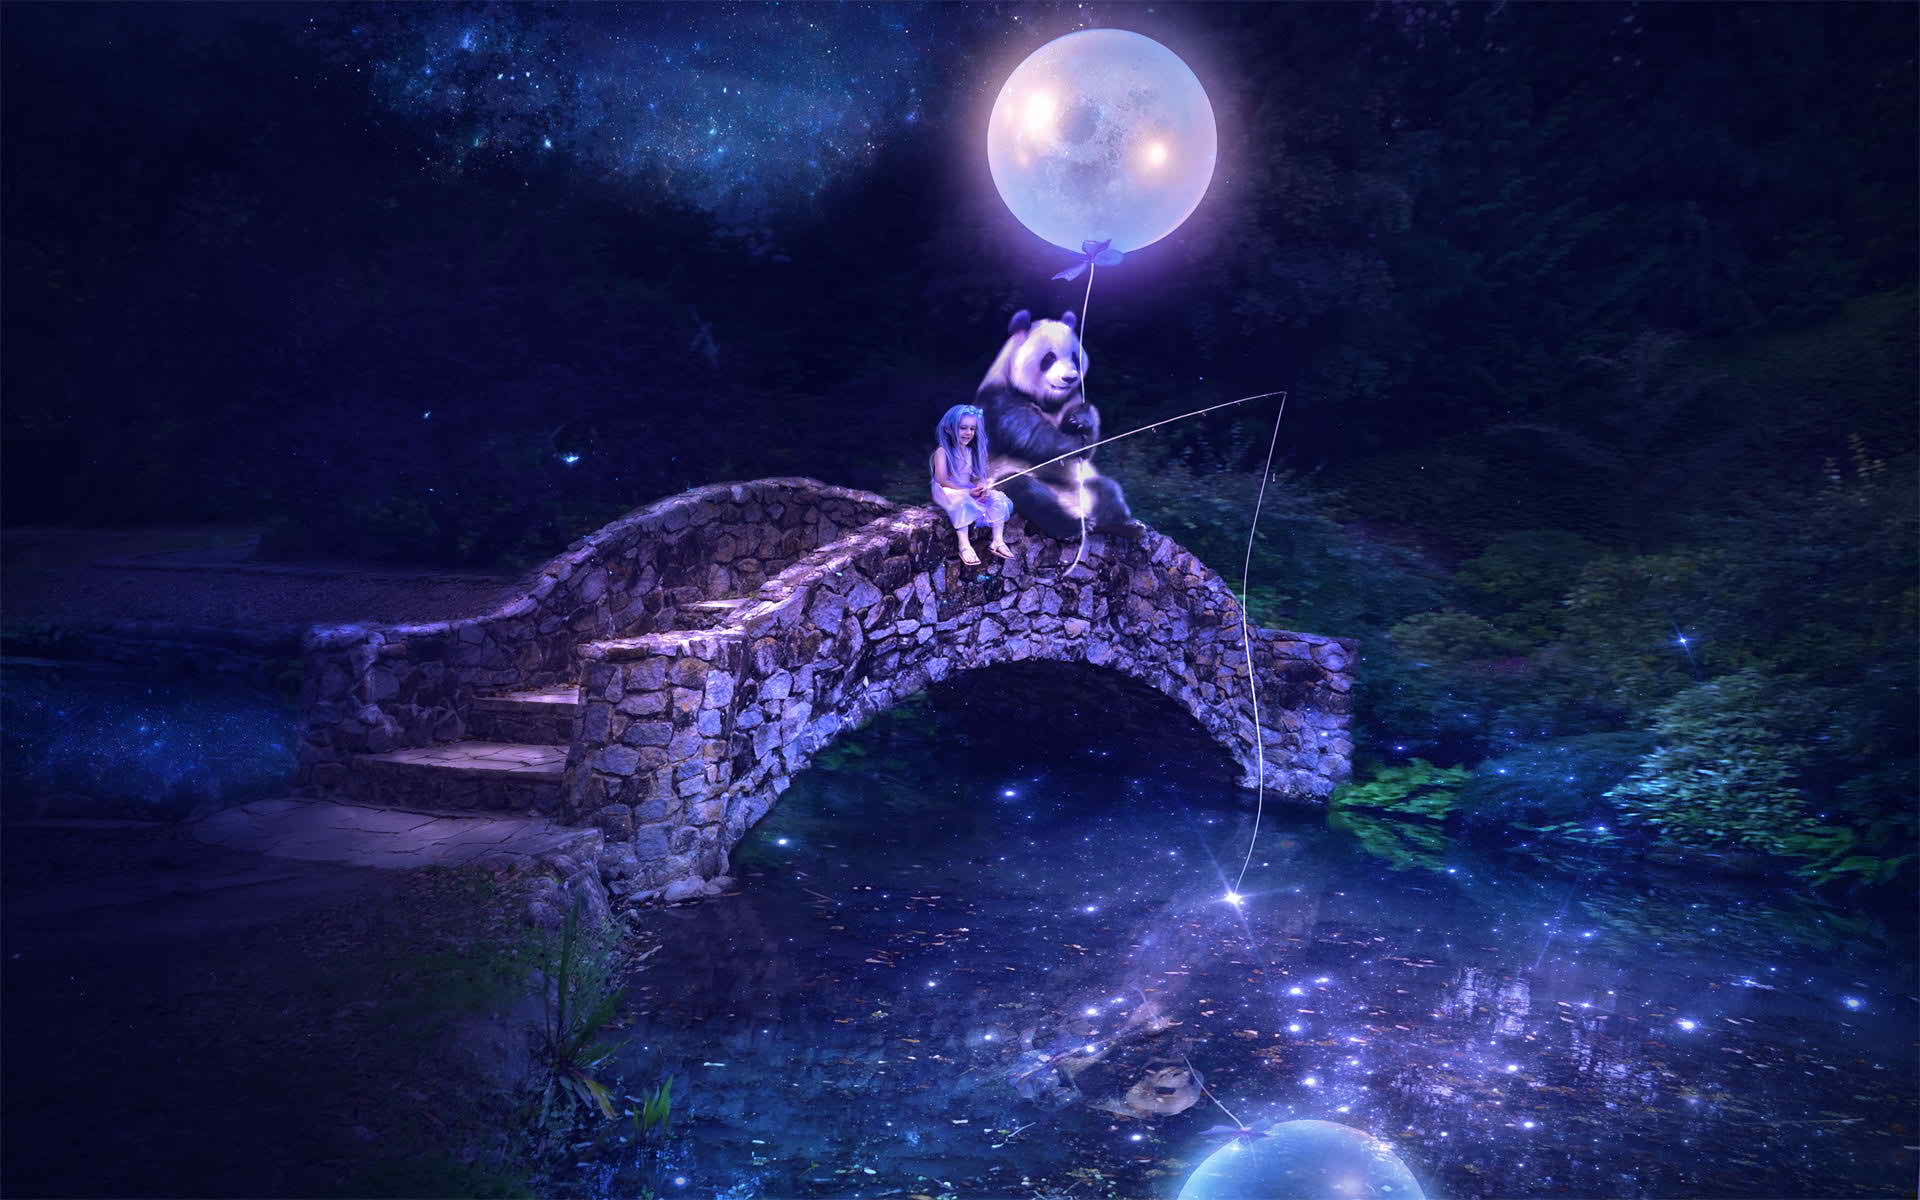 Magical hd wallpapers hd wallpapers pop